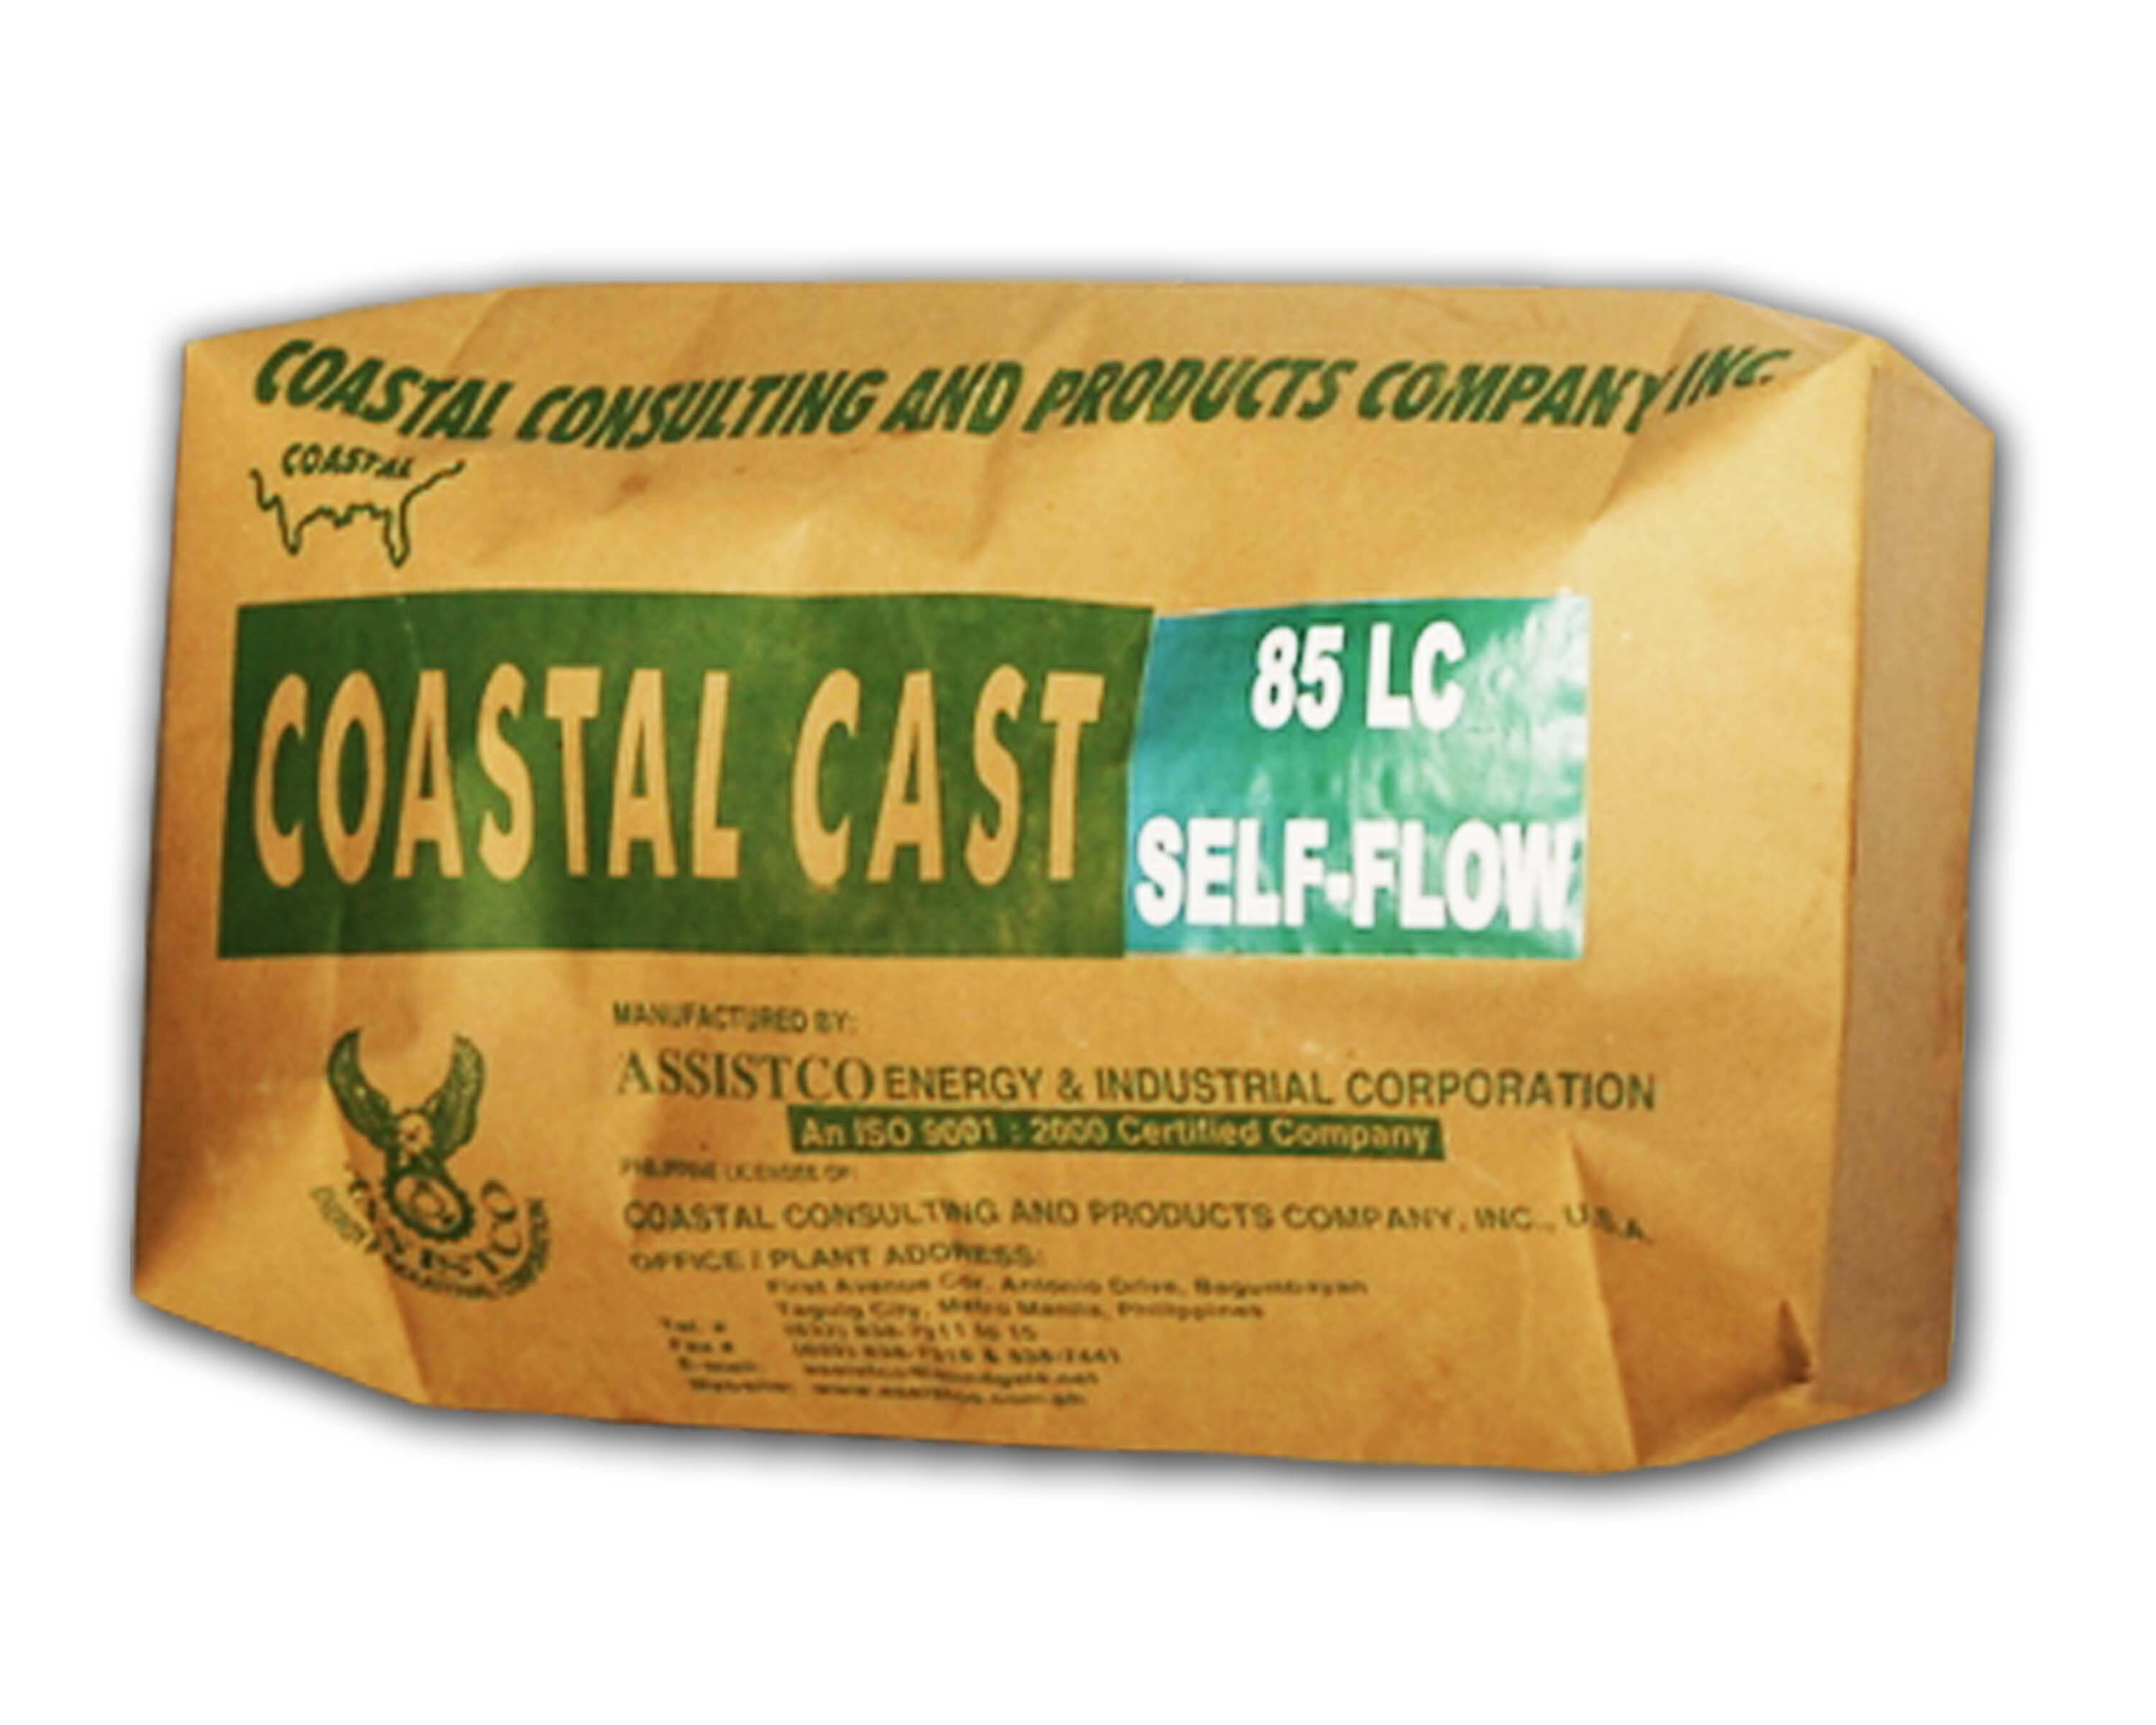 Coastal Cast 85 LC Self-Flow